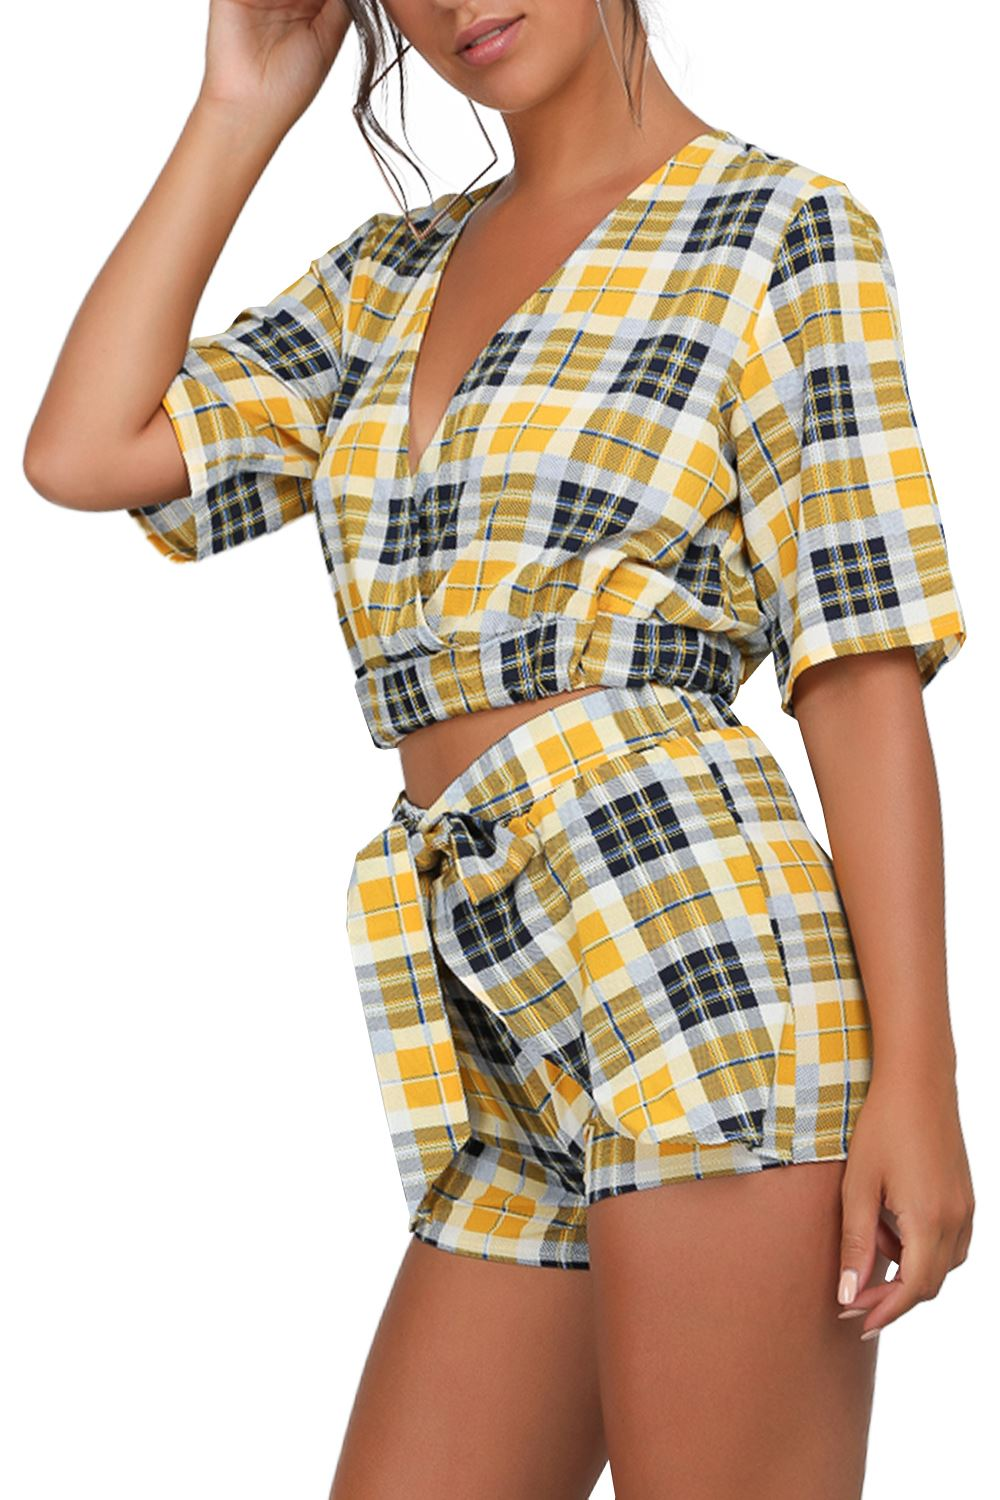 Womens-Short-Sleeve-Tartan-Stipes-Deep-V-Plunge-Top-Tie-Knot-Belted-Co-Ord-Set thumbnail 3